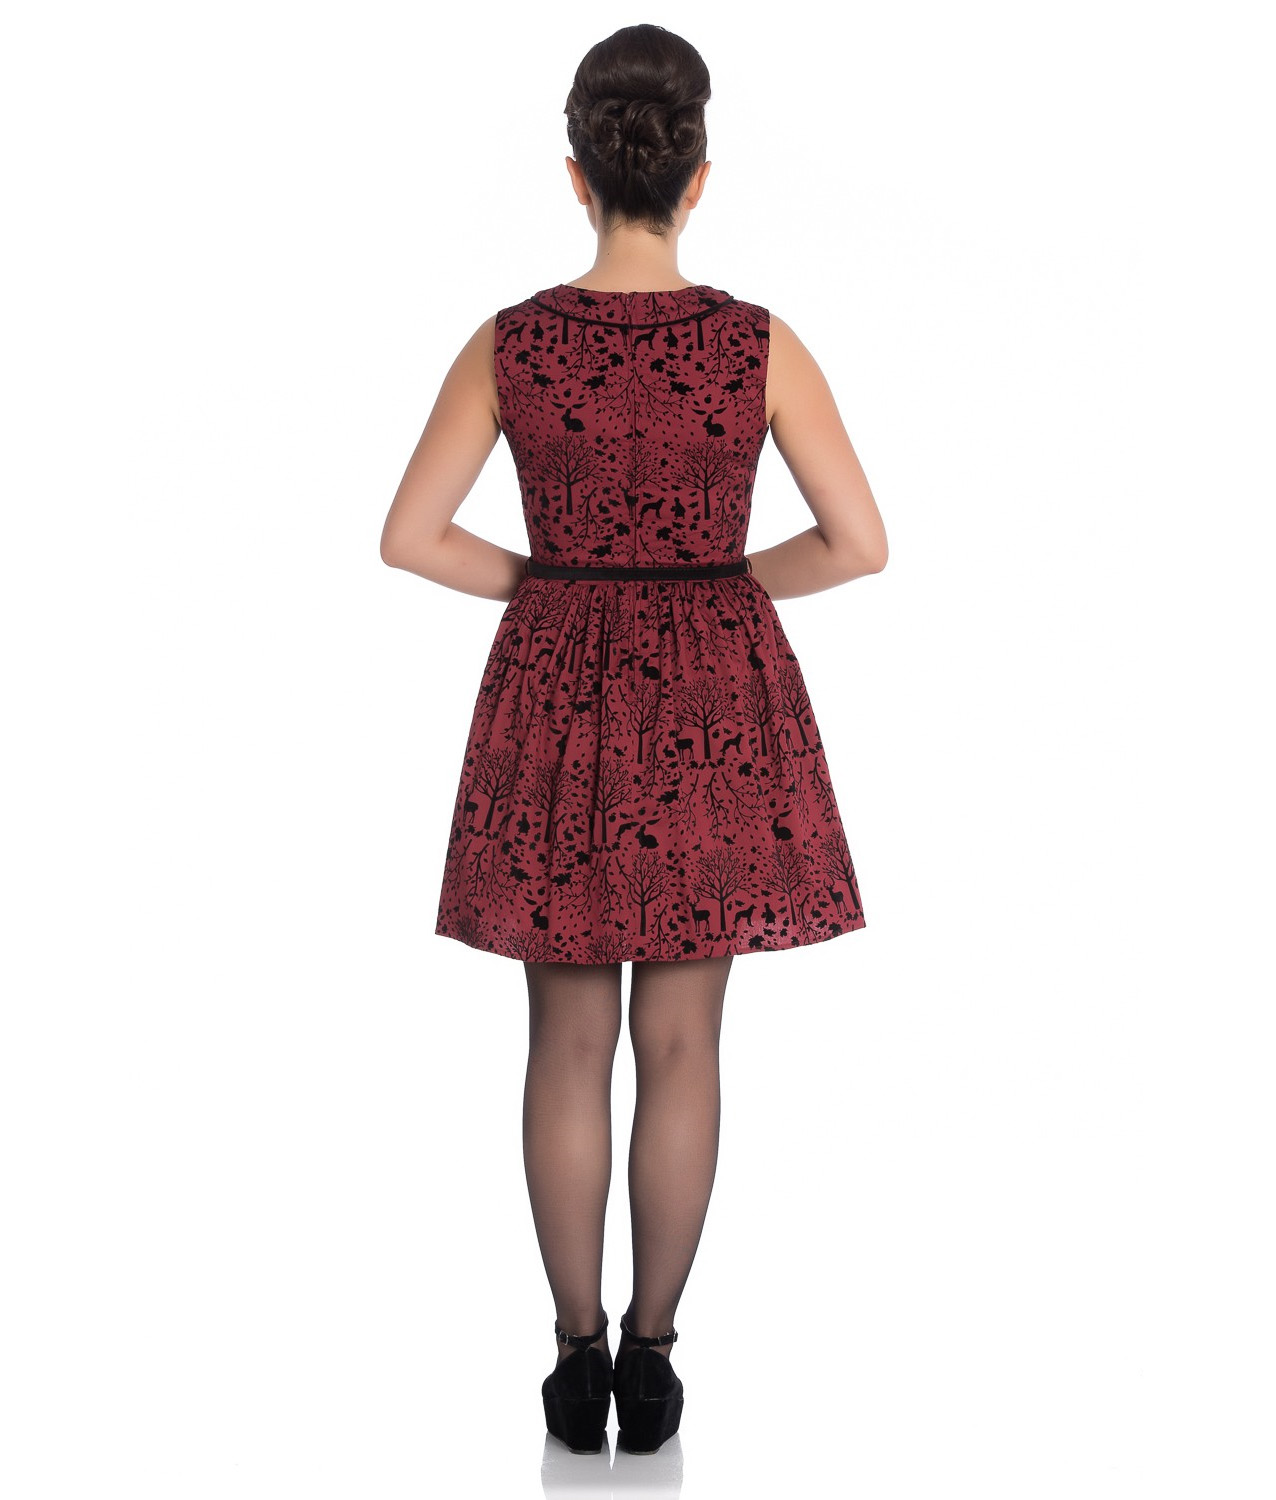 Hell-Bunny-50s-Mini-Skater-Dress-Woodland-Trees-SHERWOOD-Black-Red-All-Sizes thumbnail 25